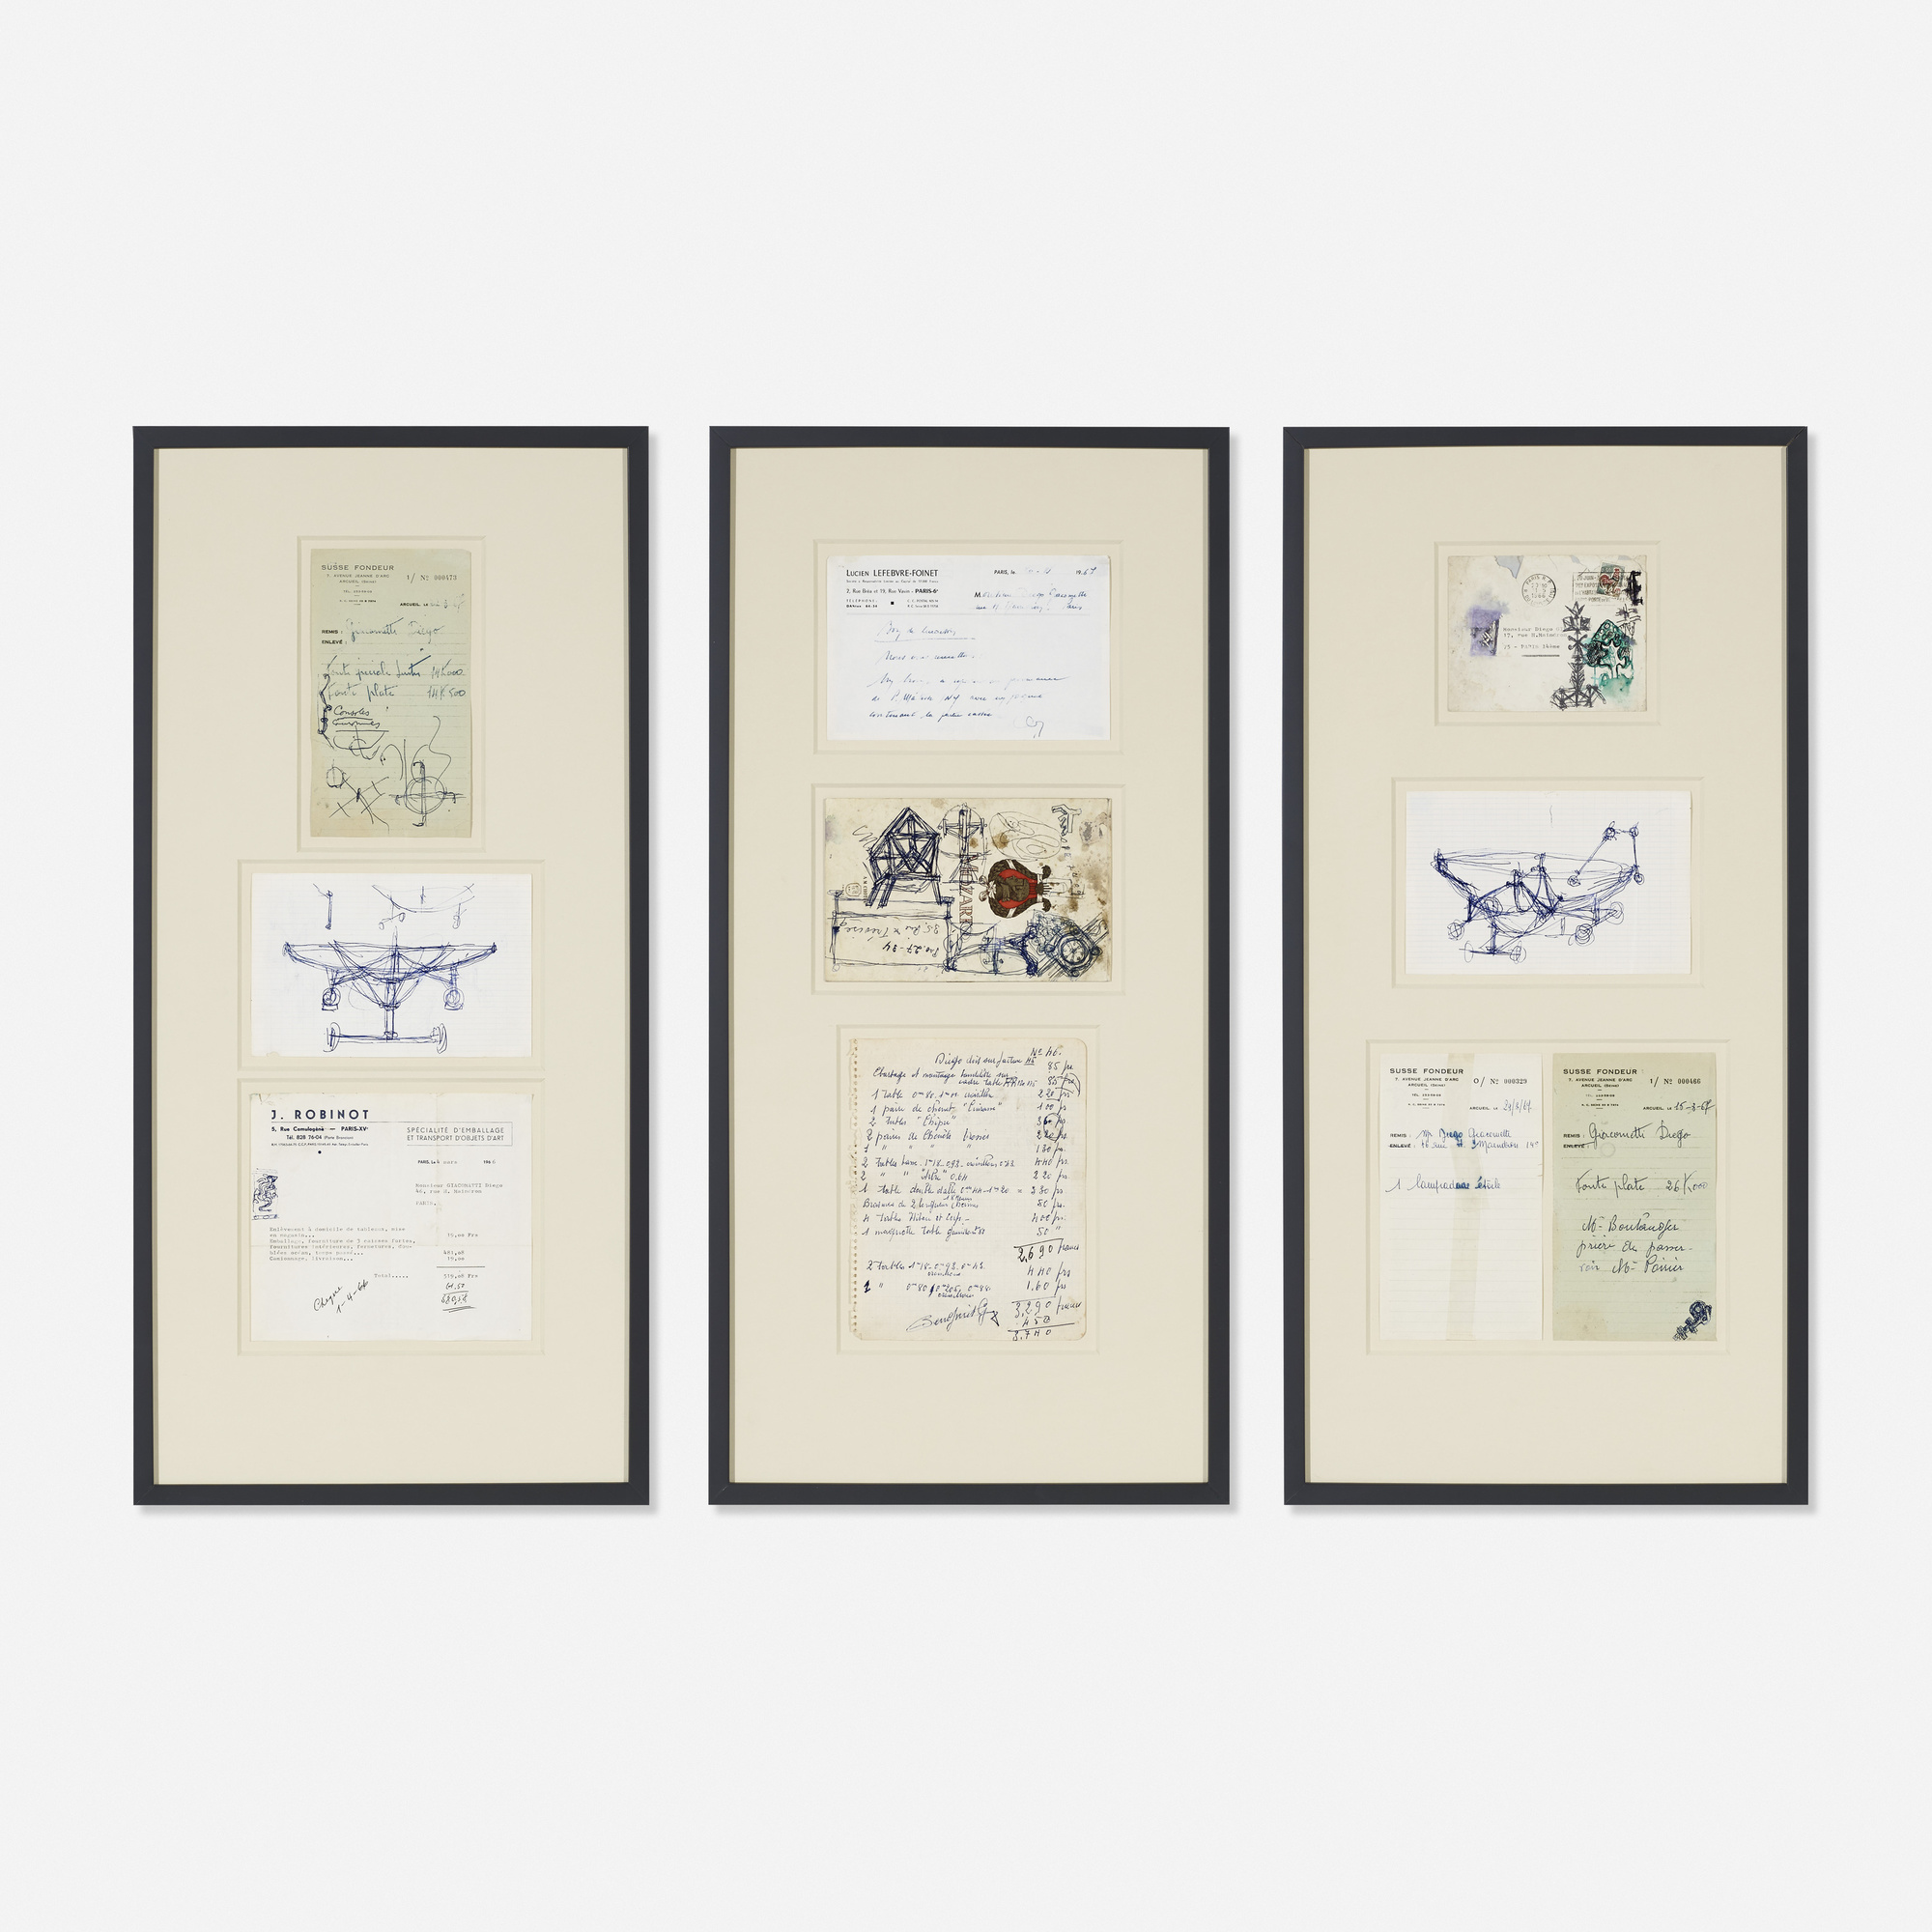 227: Diego Giacometti / collection of nine sketches and ephemera (1 of 1)